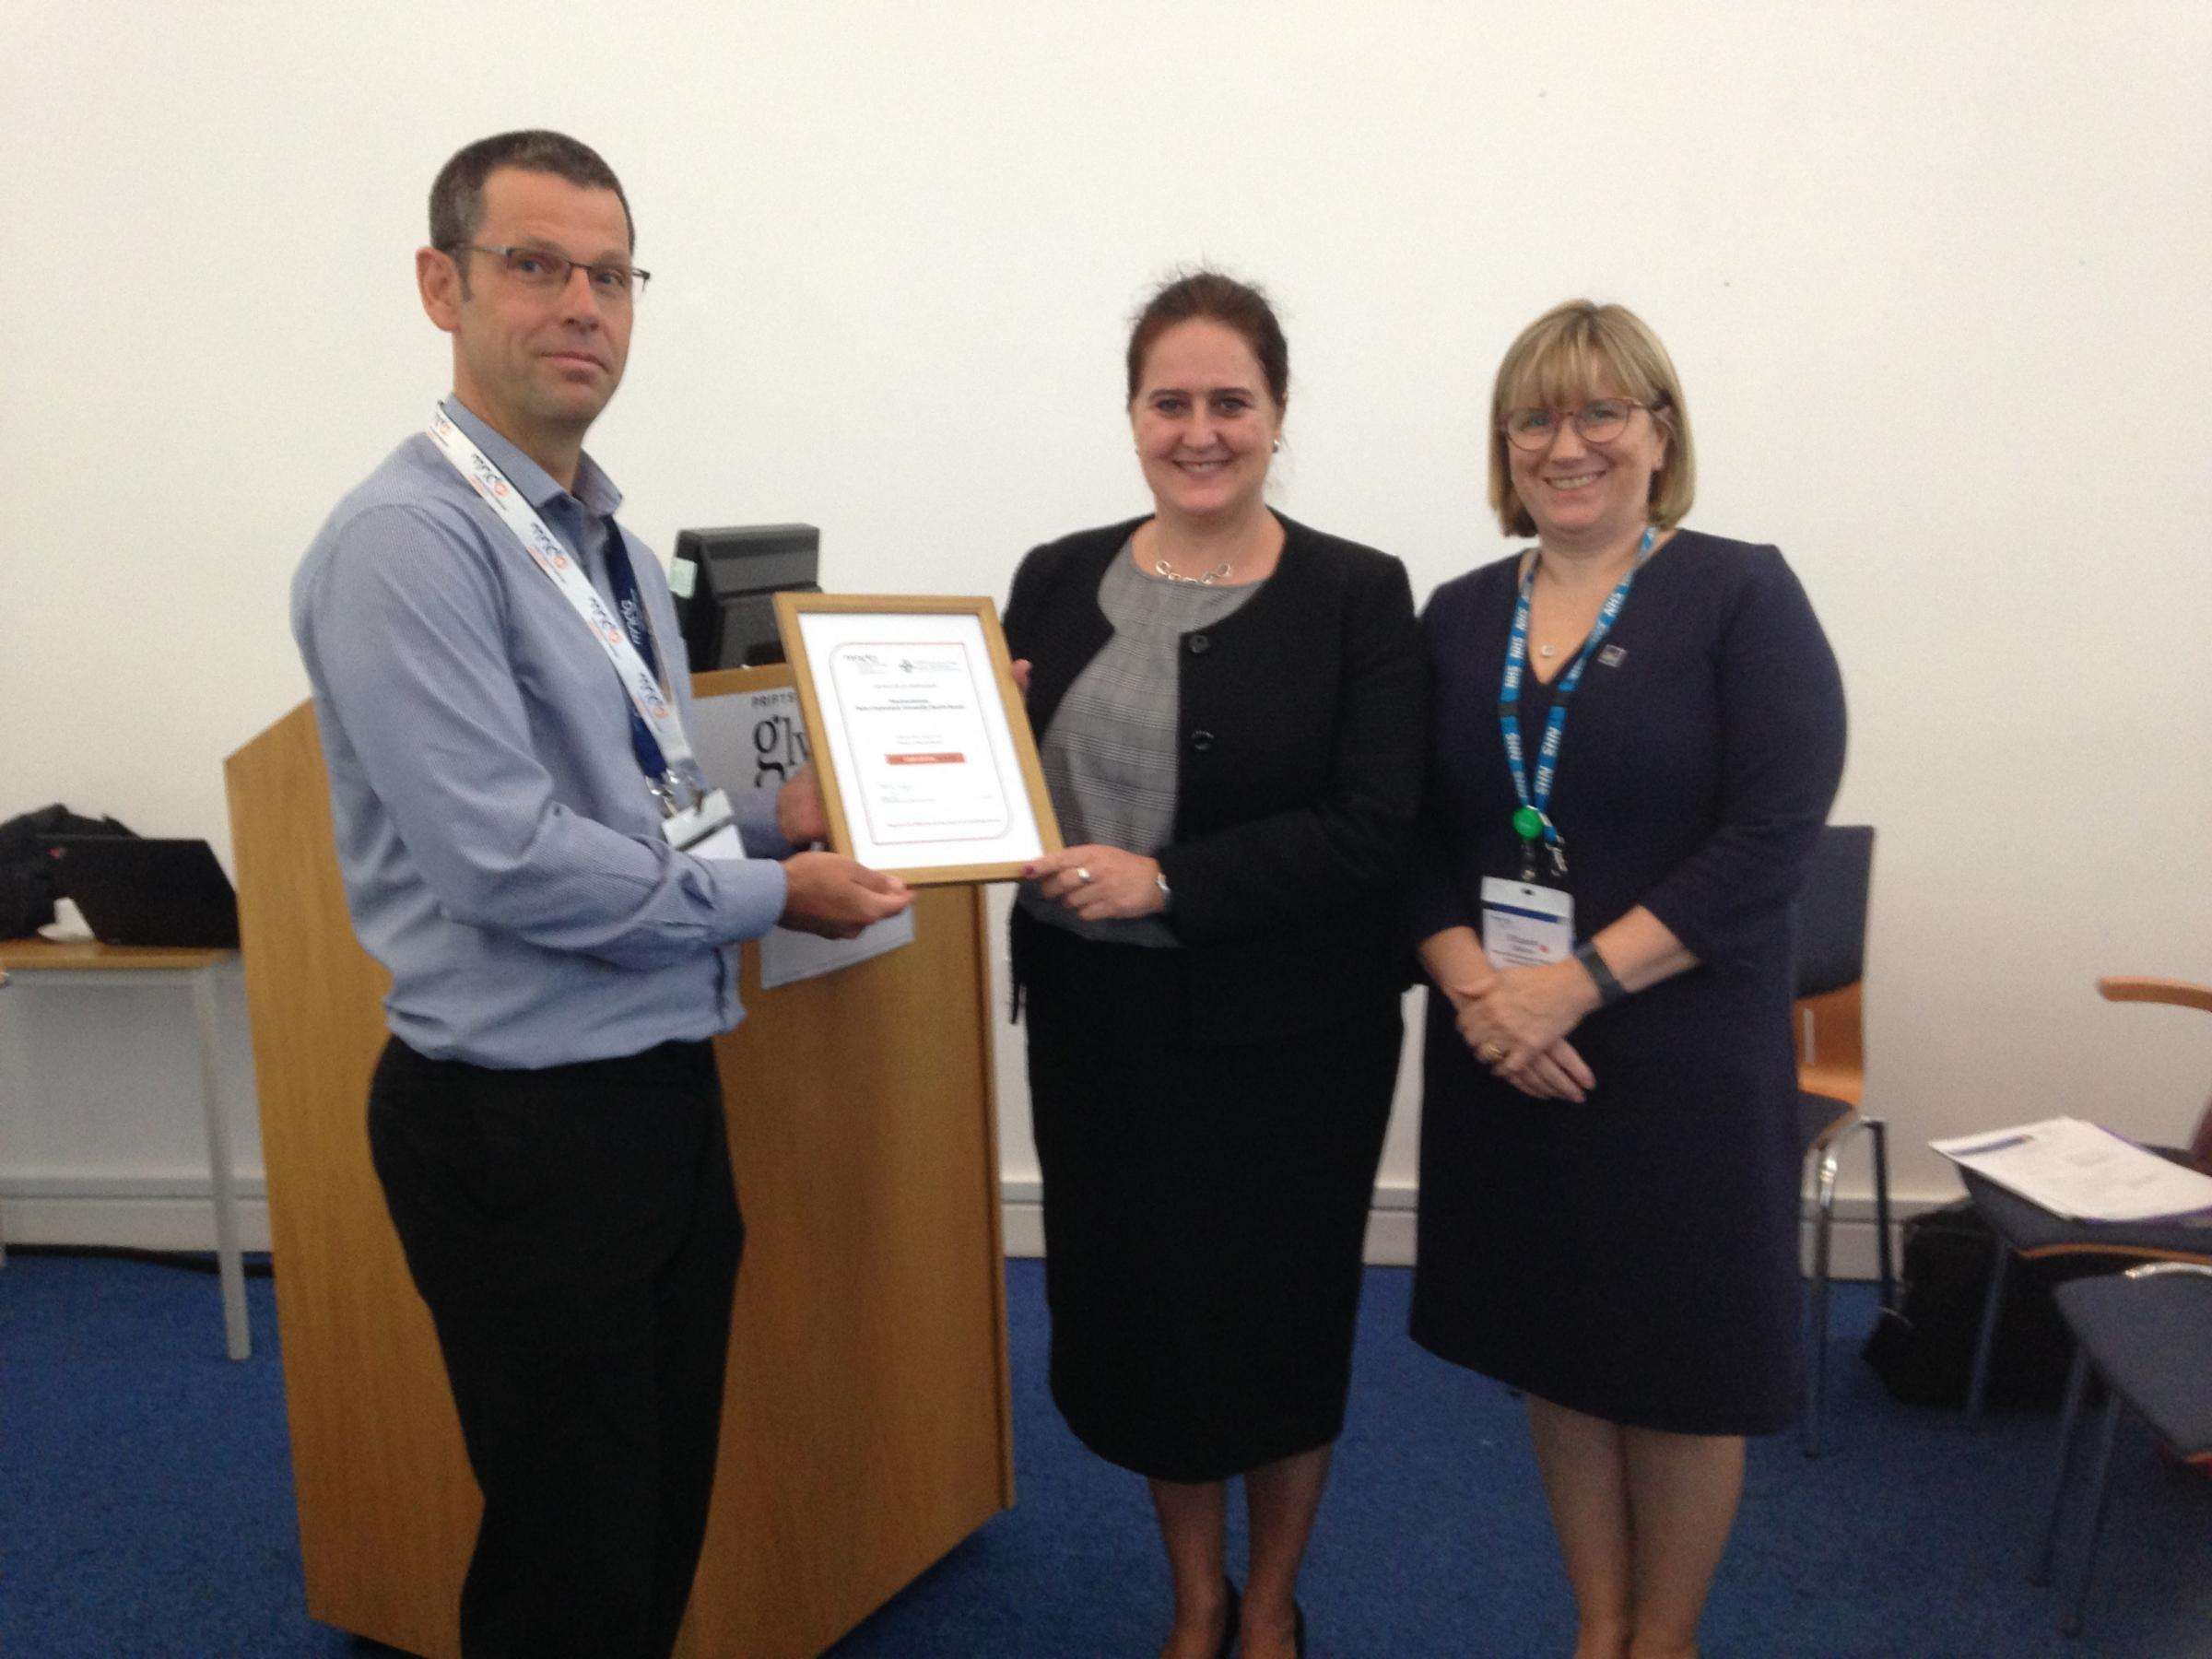 Celebrating successful partnership working to improve services for people in North Wales